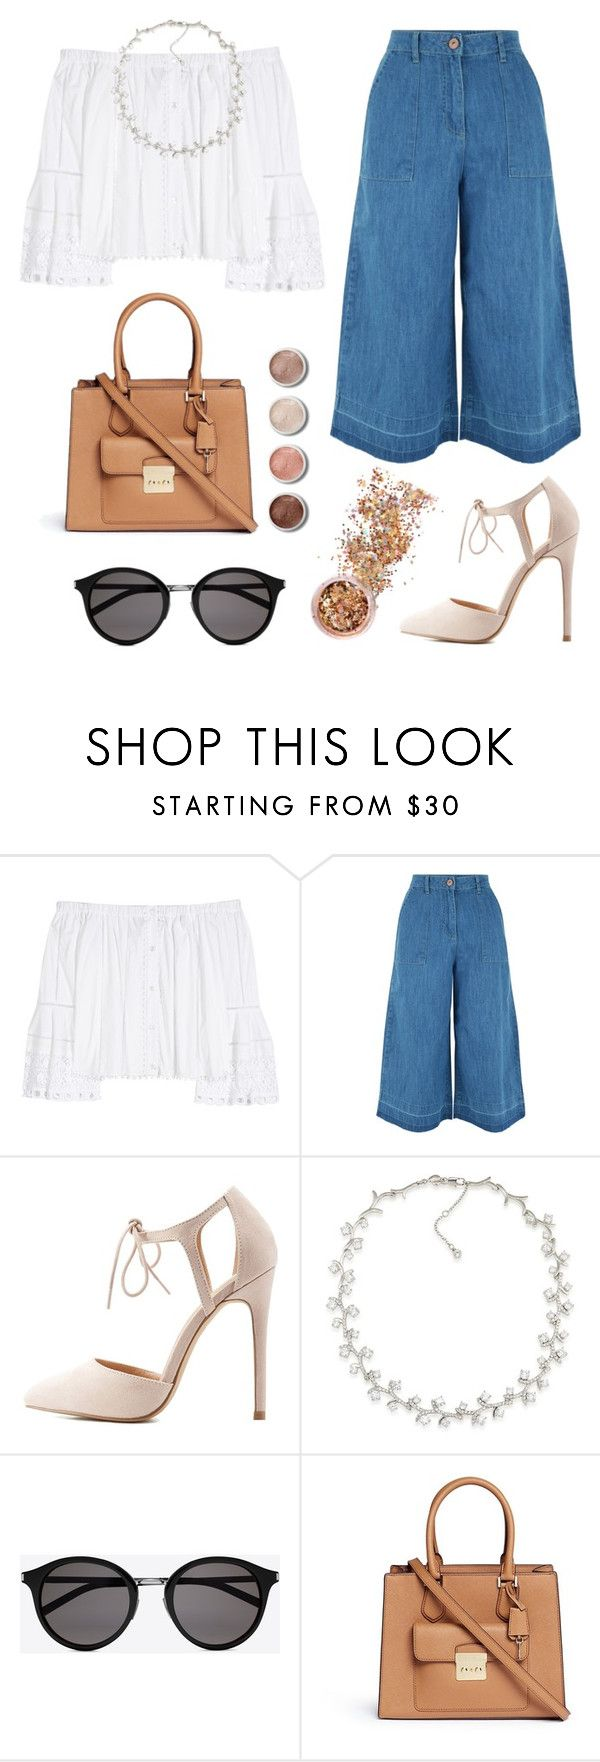 """""""Delightful"""" by live-laugh-love-btr ❤ liked on Polyvore featuring Carolina Herrera, New Look, Charlotte Russe, Carolee, Yves Saint Laurent, Michael Kors, Terre Mère and In Your Dreams"""